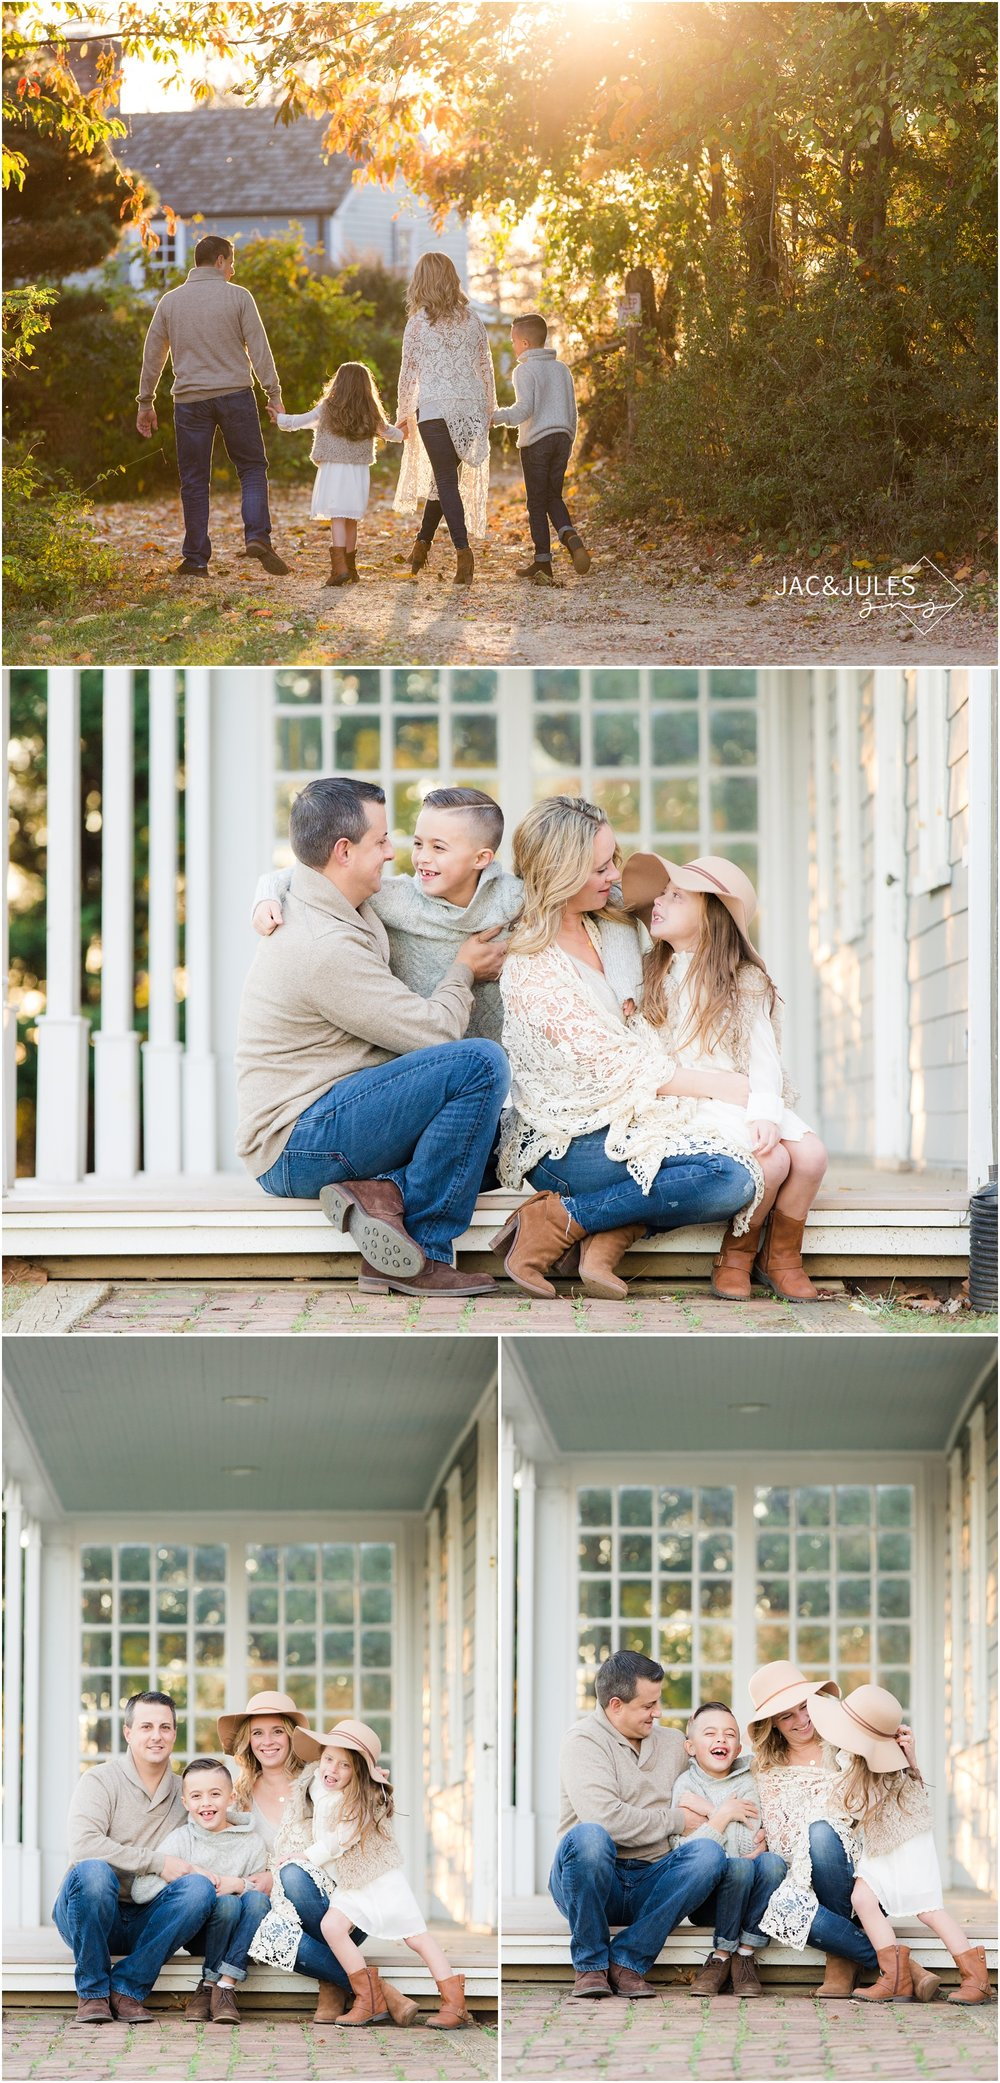 Casual family photos at bayonet farm in holmdel, nj.